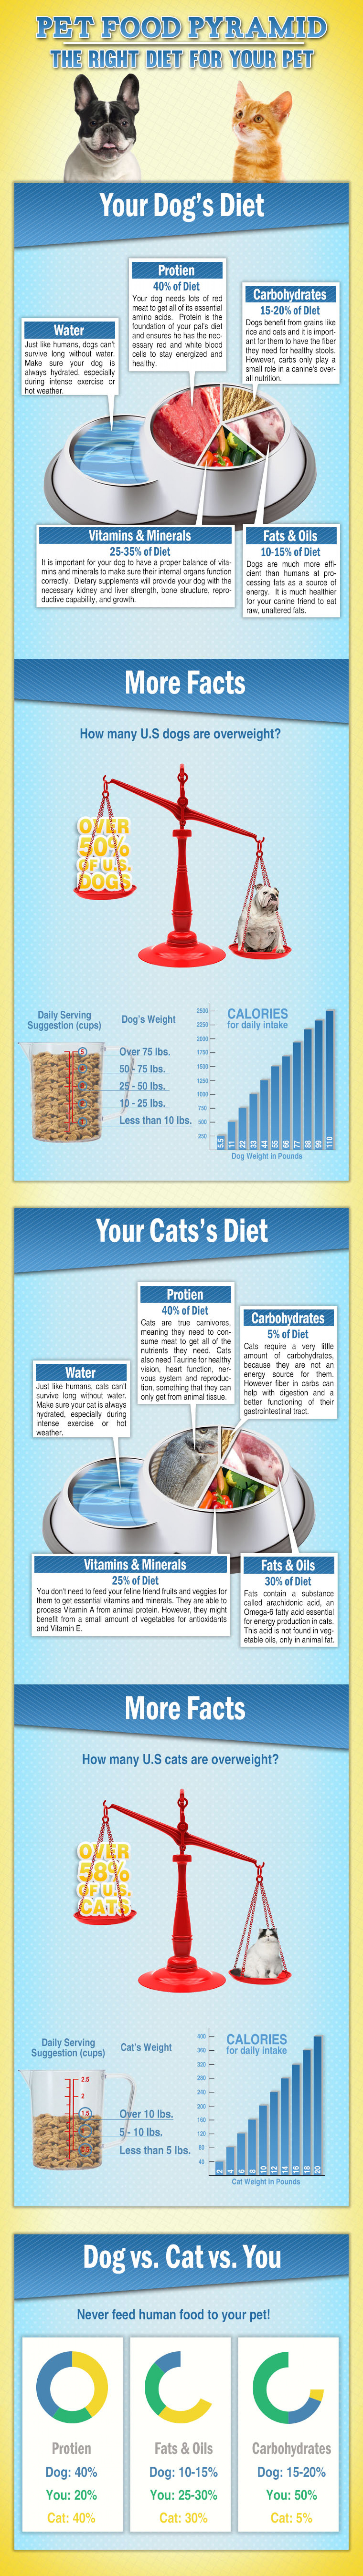 Pet Food Pyramid - The Right Diet for Your Pets Infographic